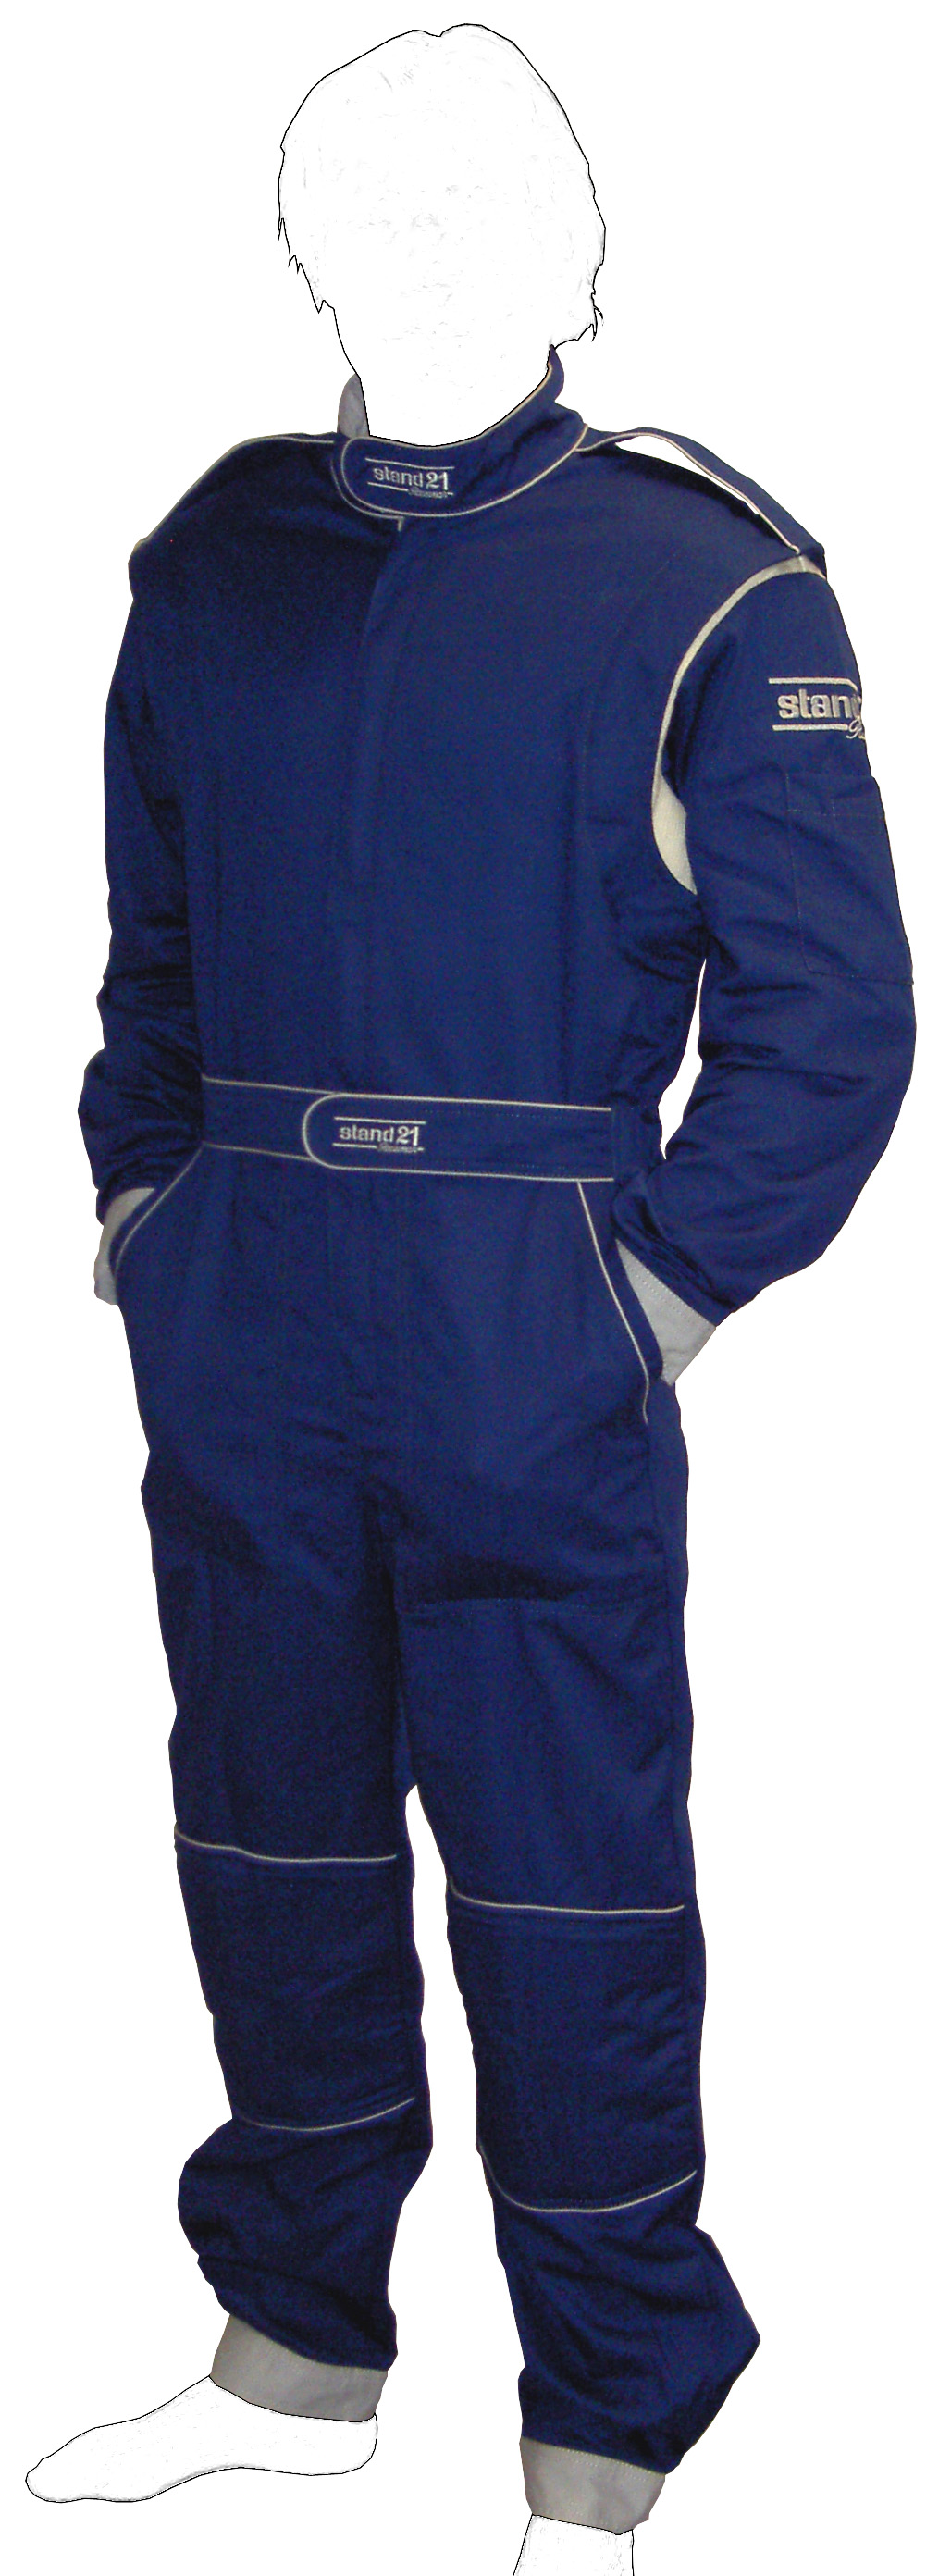 Stock Navy blue with grey piping K09 go-kart suit